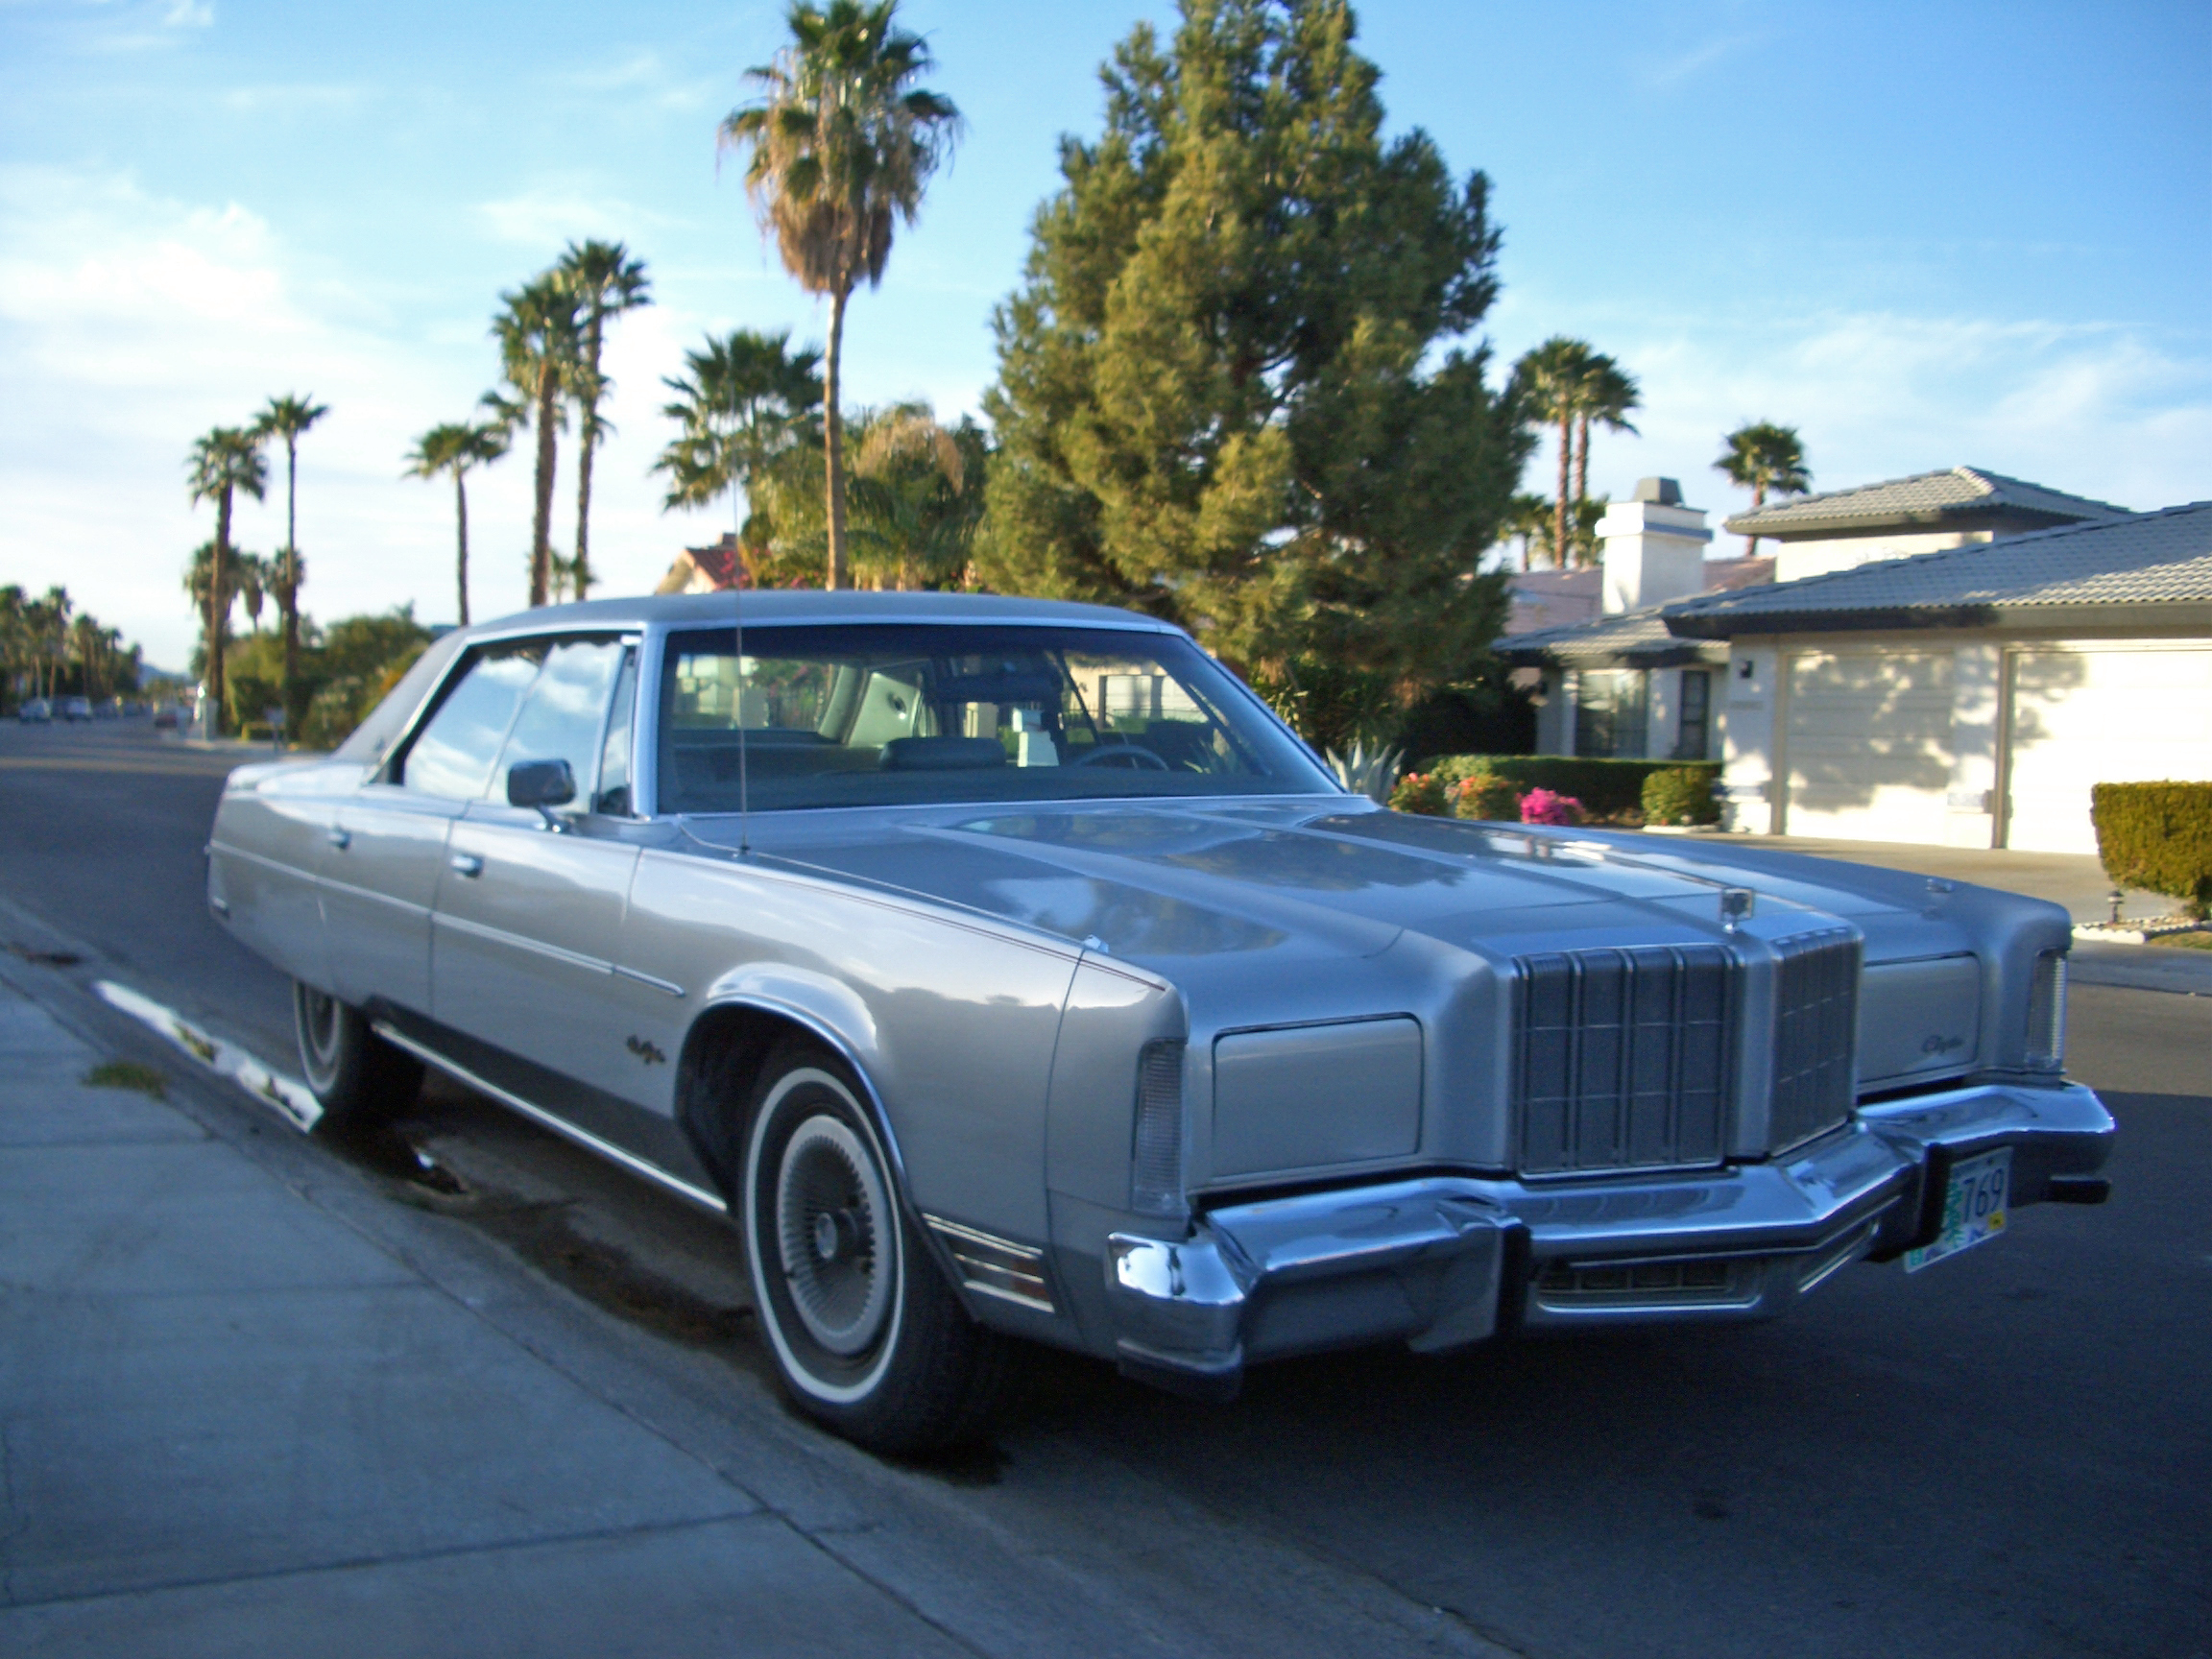 1964 chrysler new yorker images information and history for 1964 chrysler new yorker salon for sale